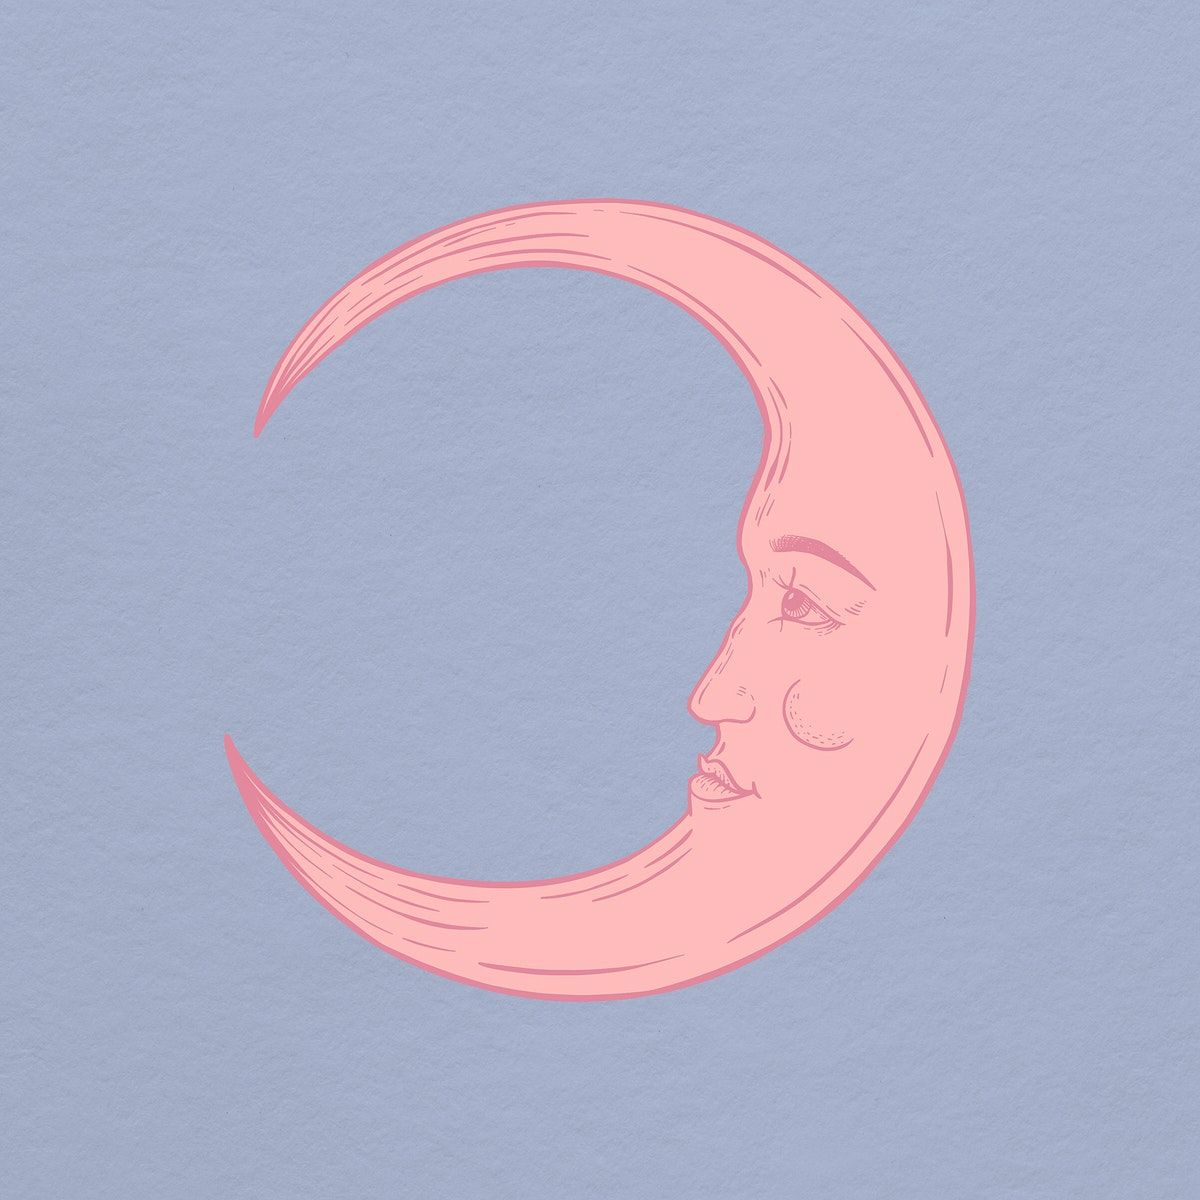 Download Premium Illustration Of Pink Crescent Moon Face Sticker Overlay In 2020 Face Stickers Moon Face Illustration